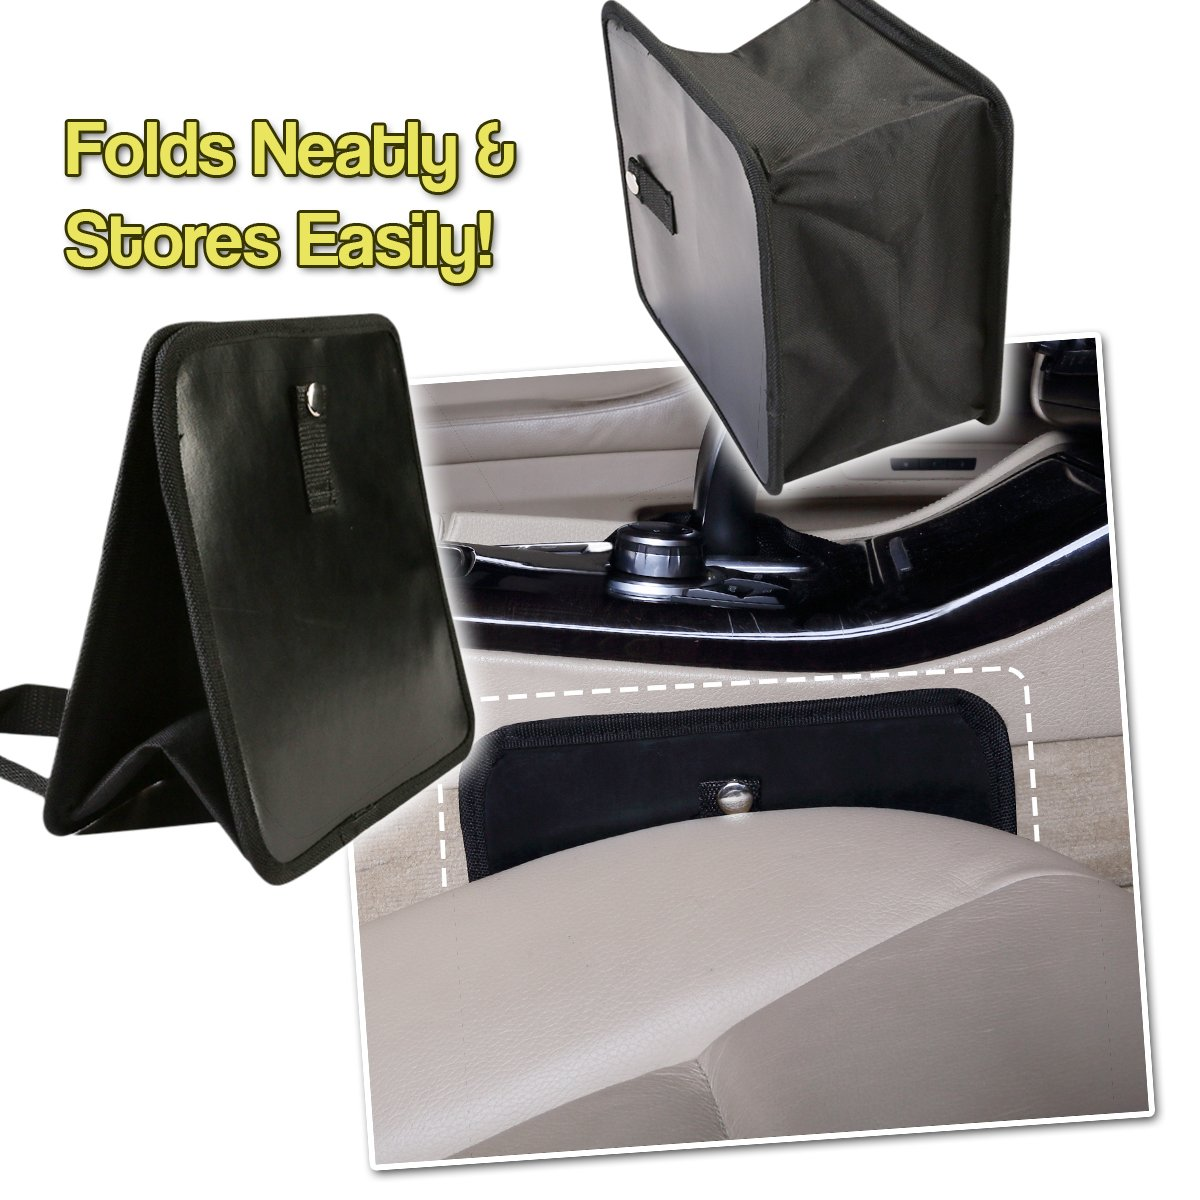 Classic Black Premium Quality Black Universal Traveling Portable Car Trash Can Comfort Wheels OR0028 Zone Tech Fully Leak Proof Vehicle Waste Bag